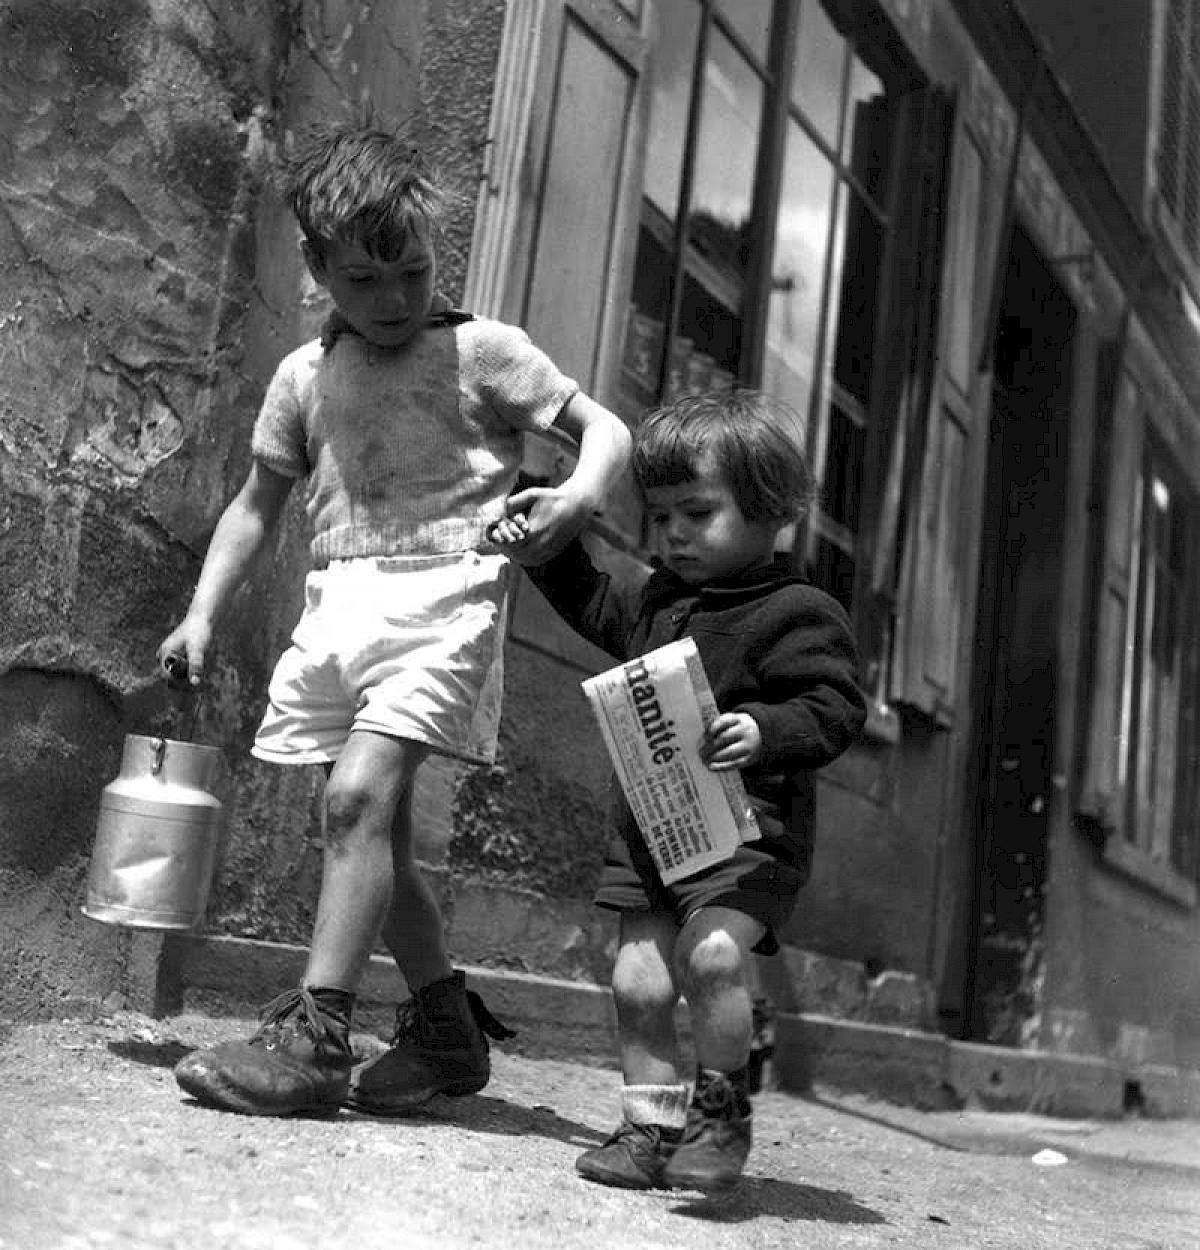 Kids on the street Doisneau b&w fashion photography timeless Vogue inspo textures body timeless moss bruce weber lindbergh newton avedon demarchelier meisel Alaia Chanel vintage